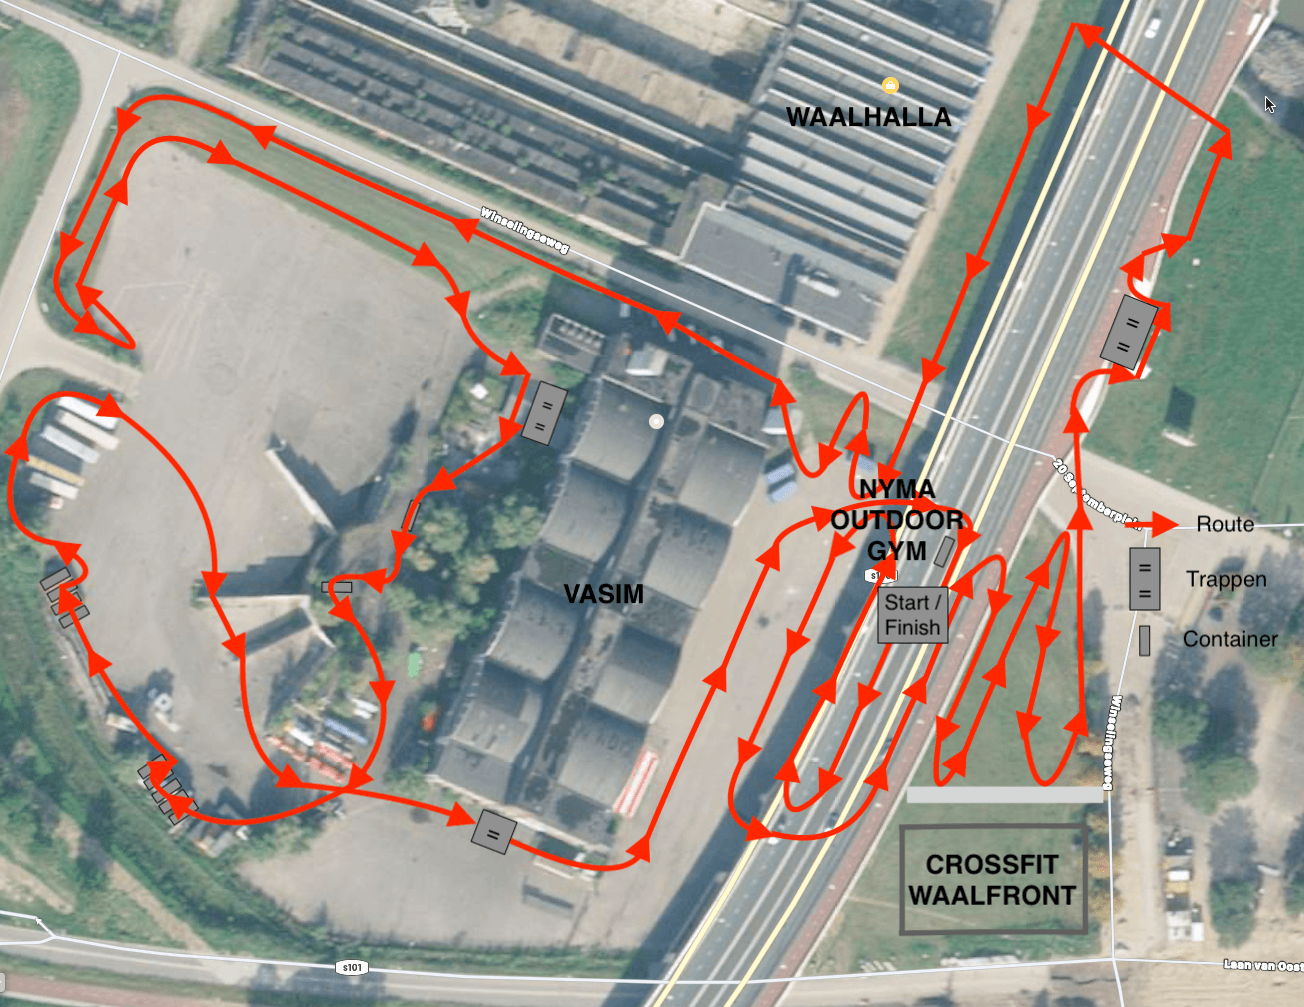 NYMA - OBSTACLE RUN TRAINING - ROUTE